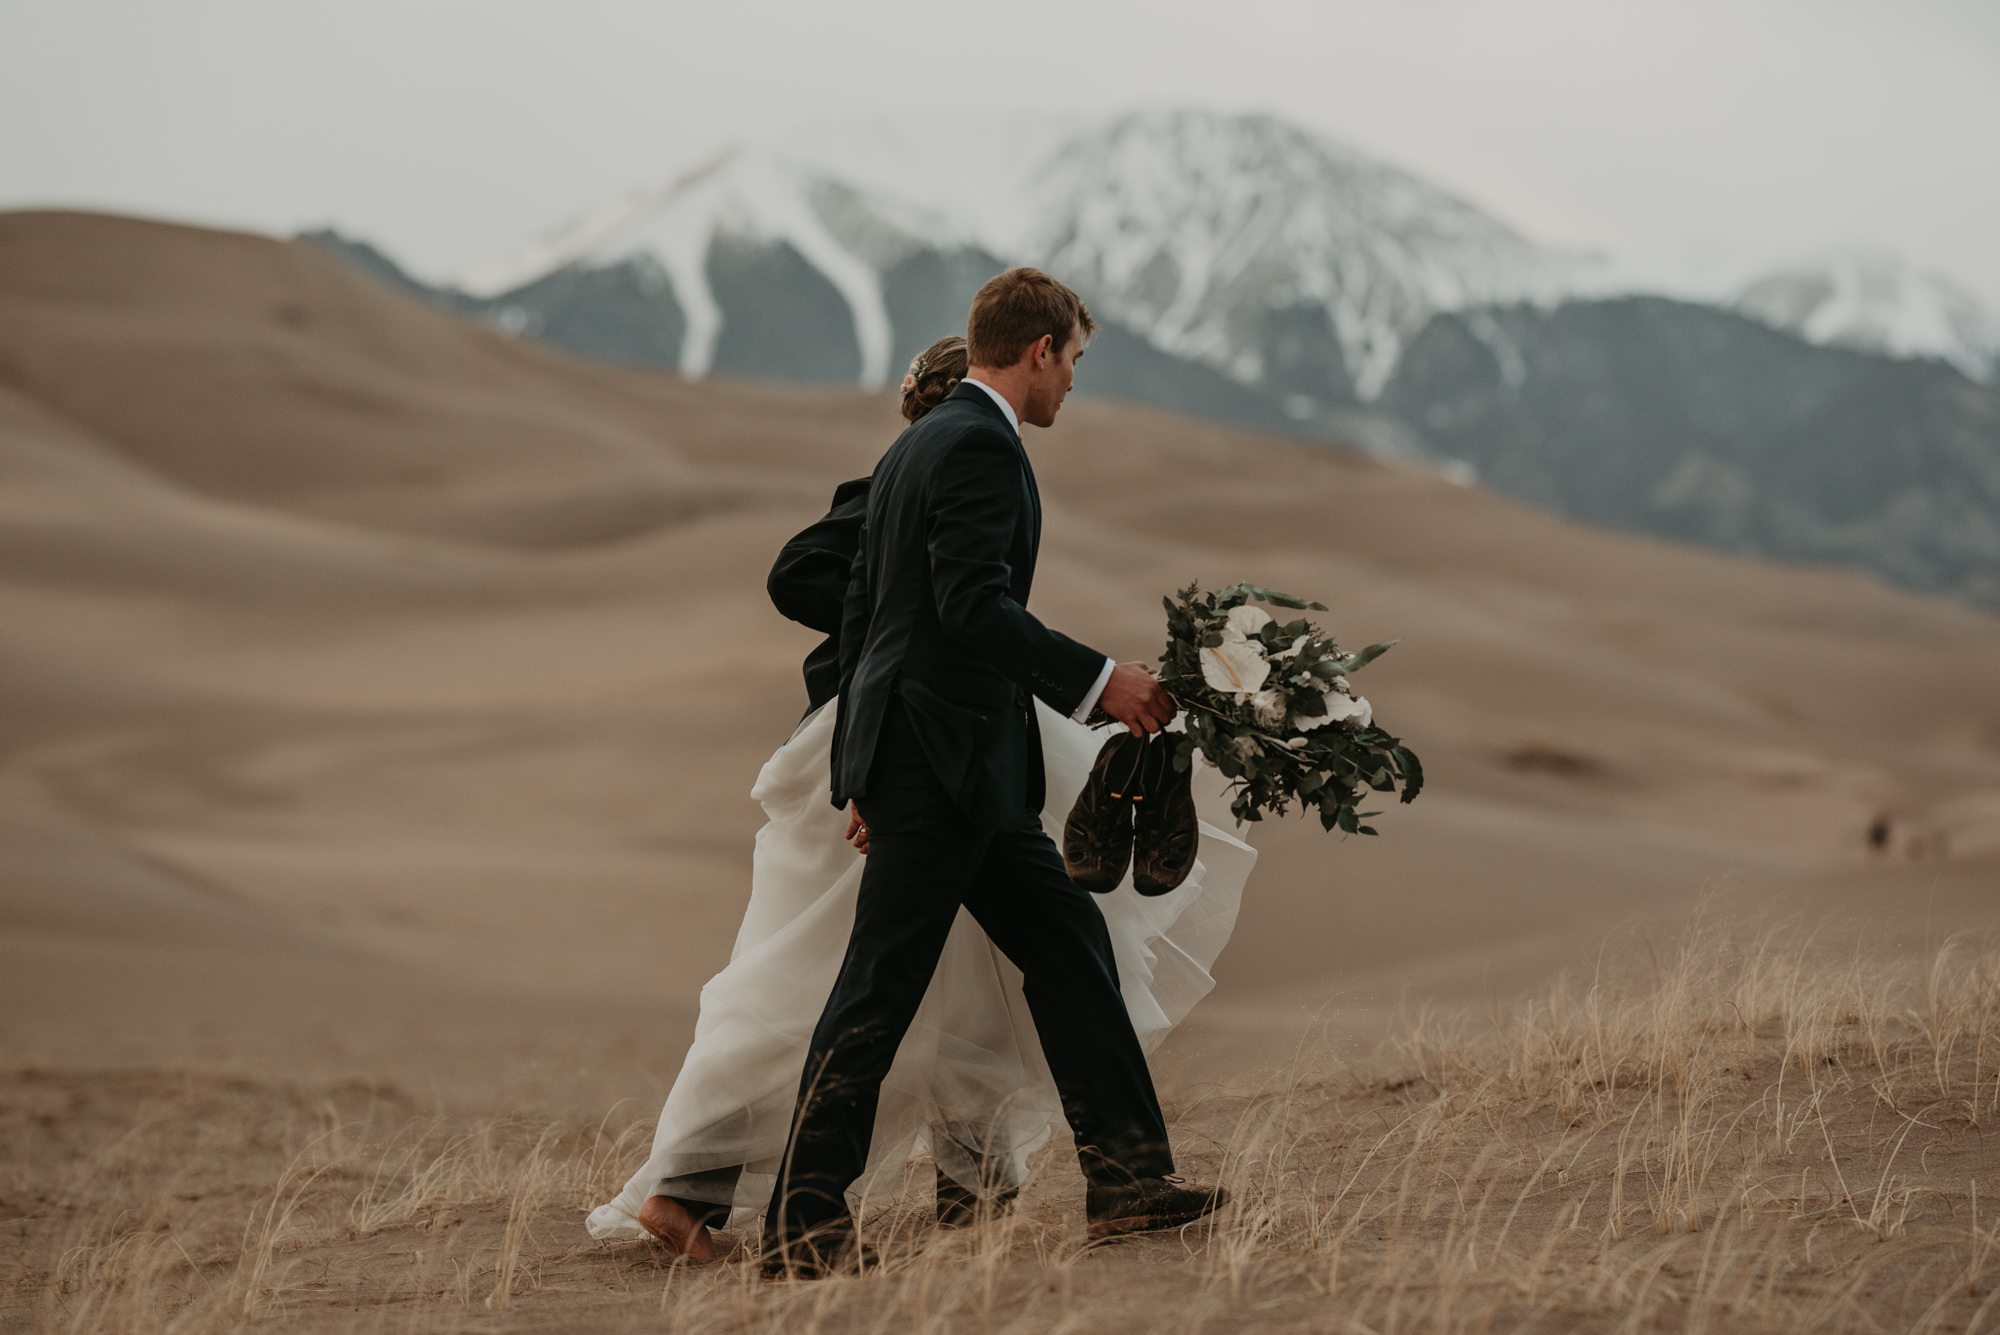 The Sand Dunes is one of the best places for hiking elopements in Colorado